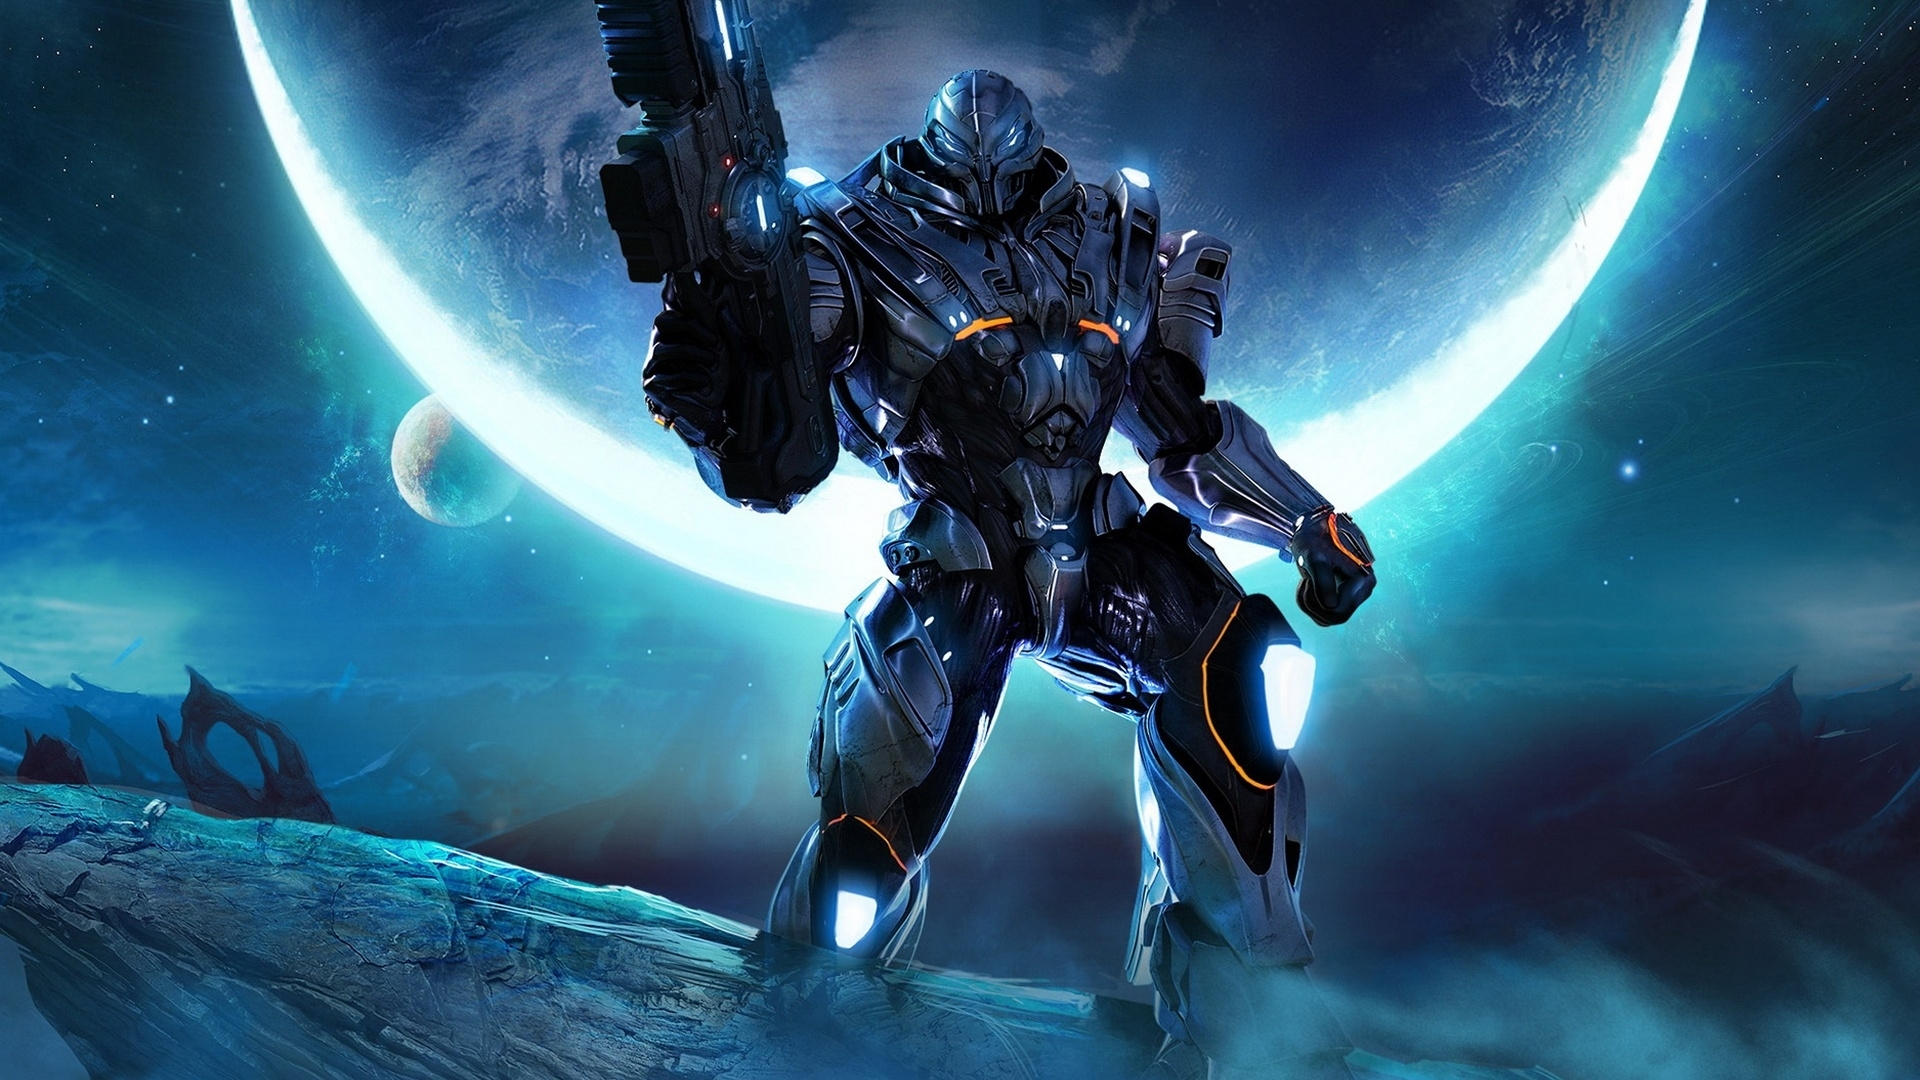 halo screensavers and wallpapers | games, halo reach, hot, original